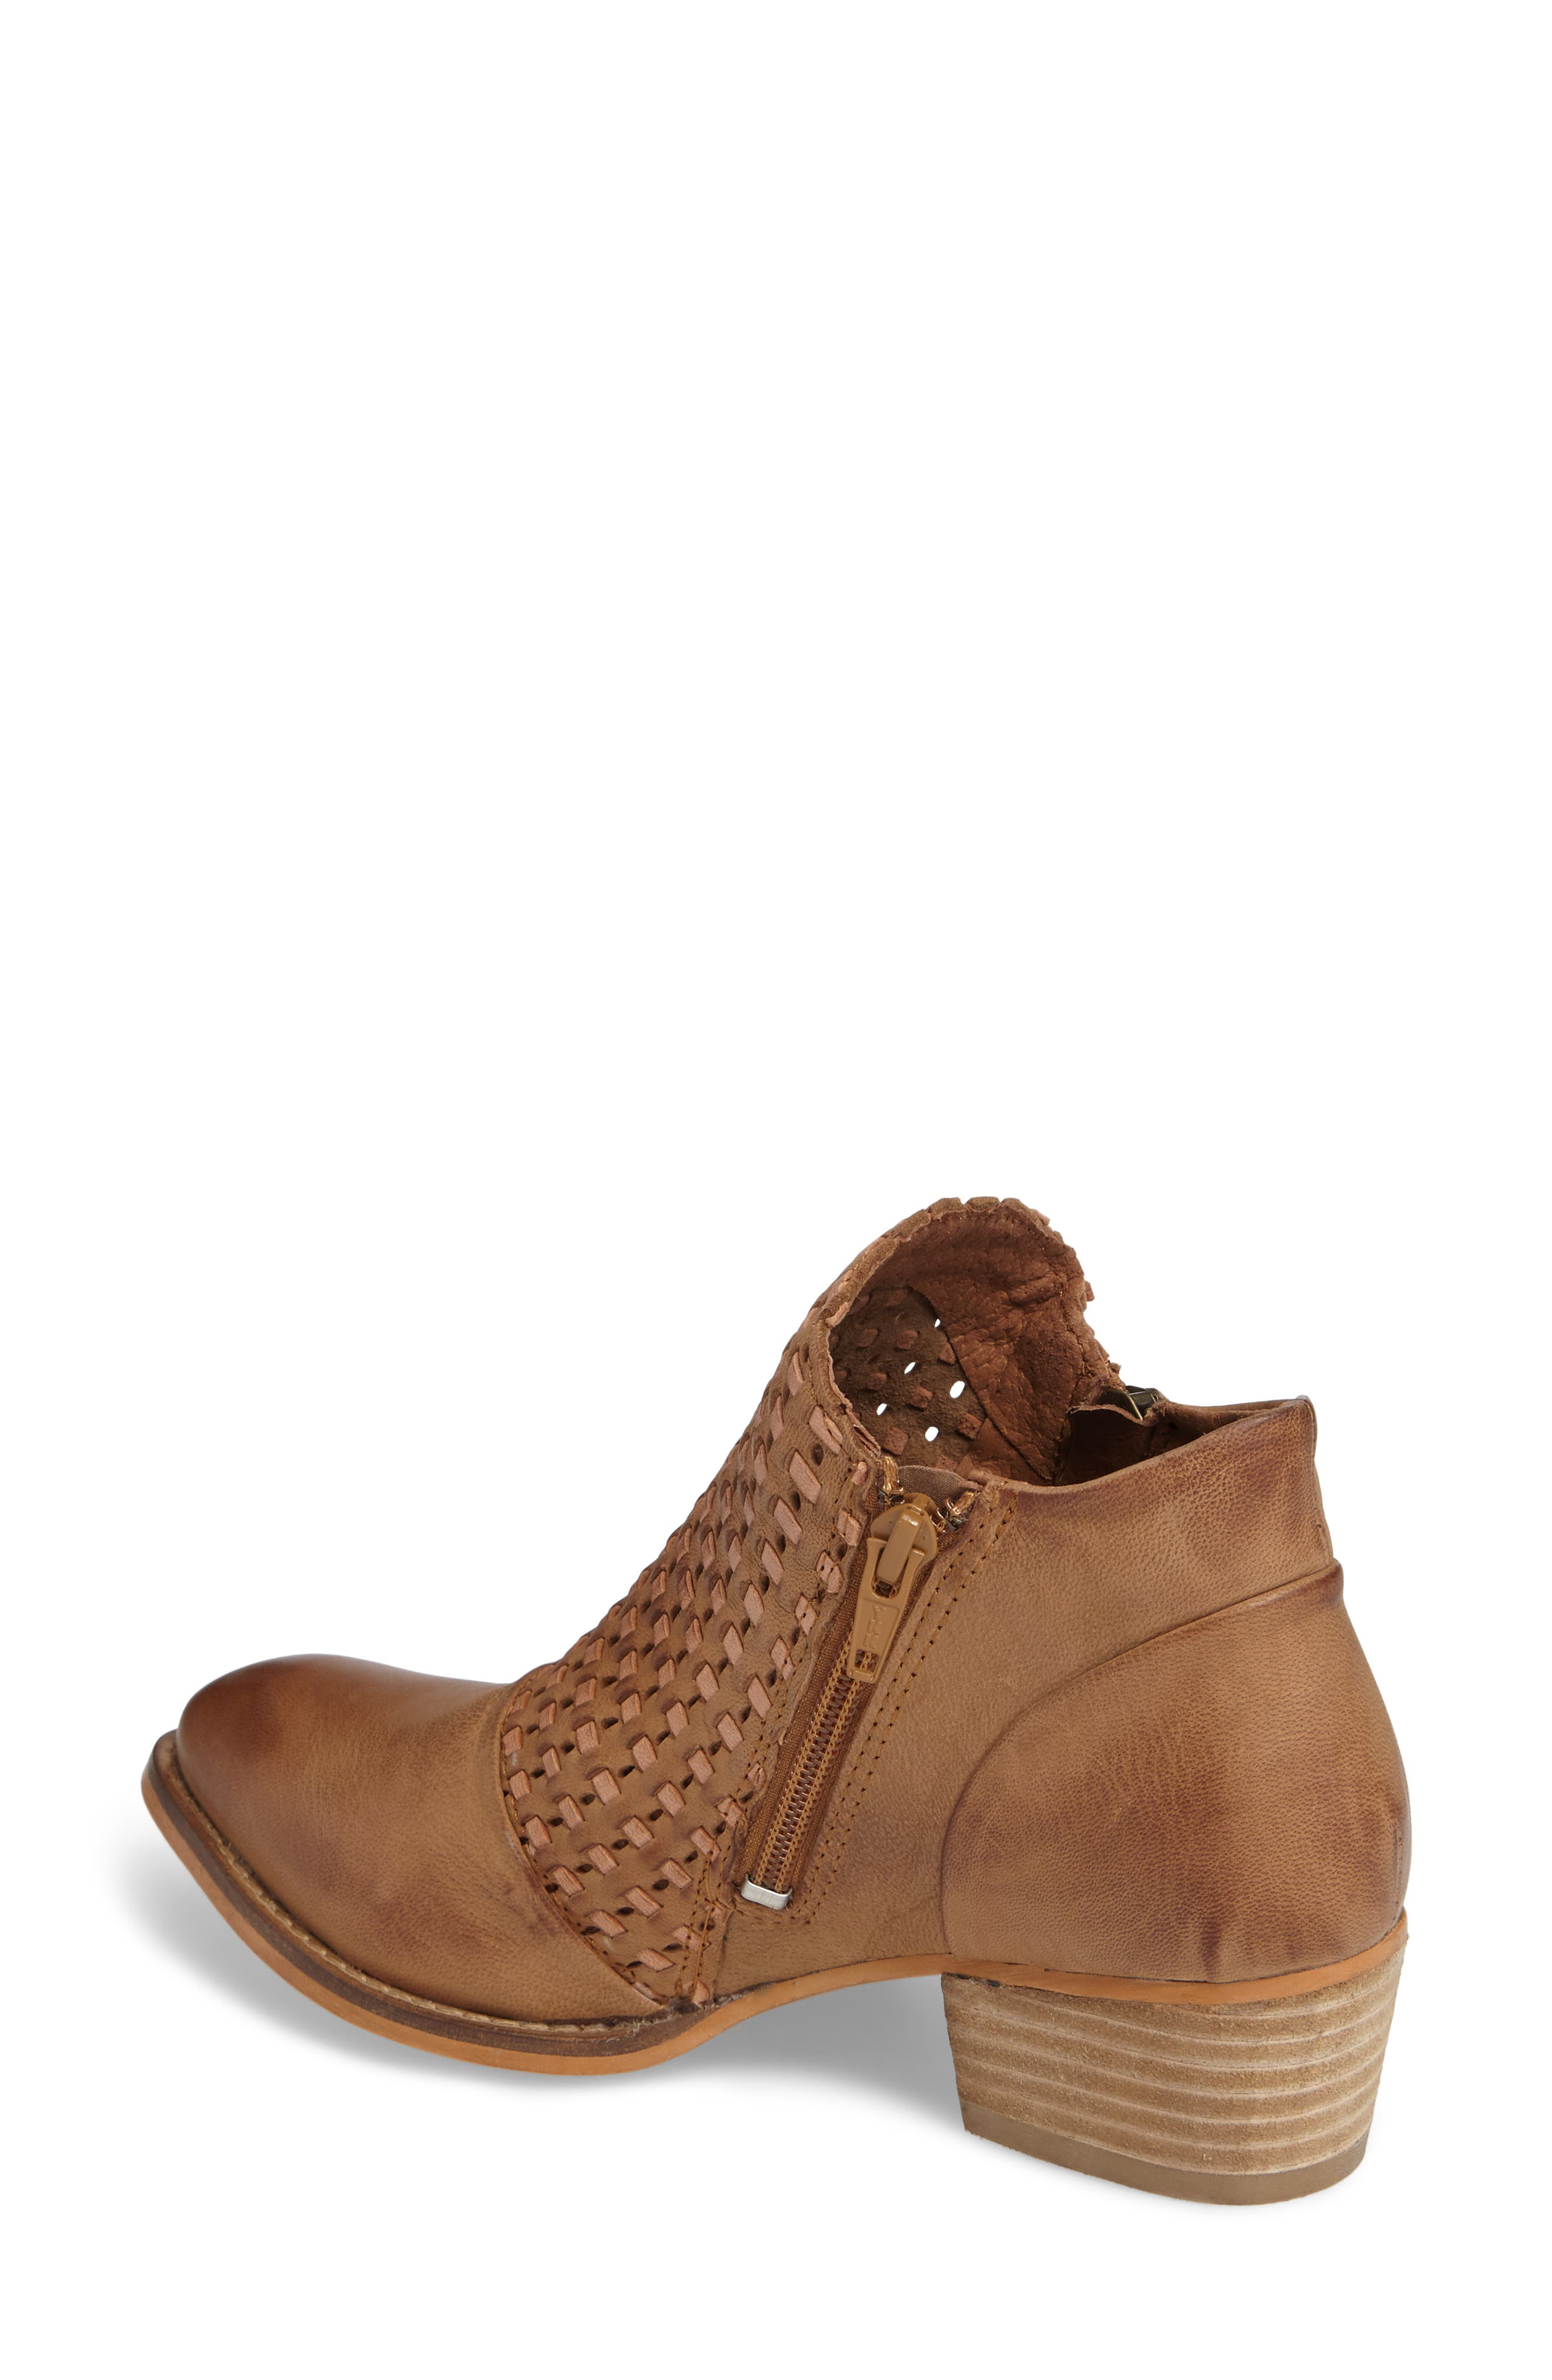 Ravi Perforated Woven Bootie,                             Alternate thumbnail 4, color,